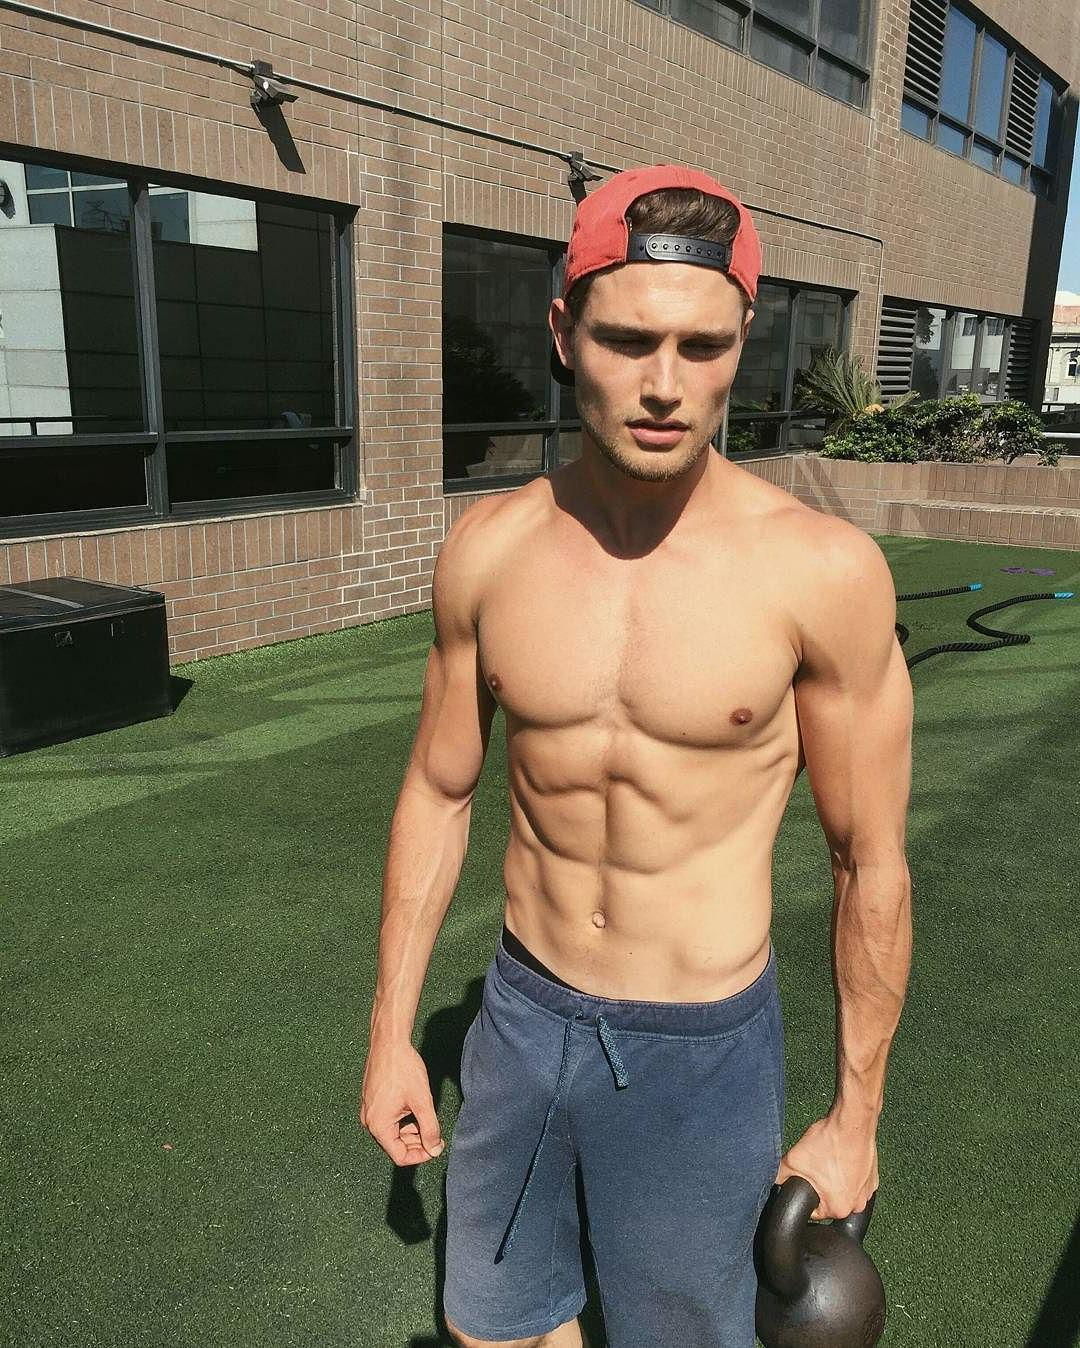 fit-guy-abs-shirtless-pecs-lifting-weights-jawline